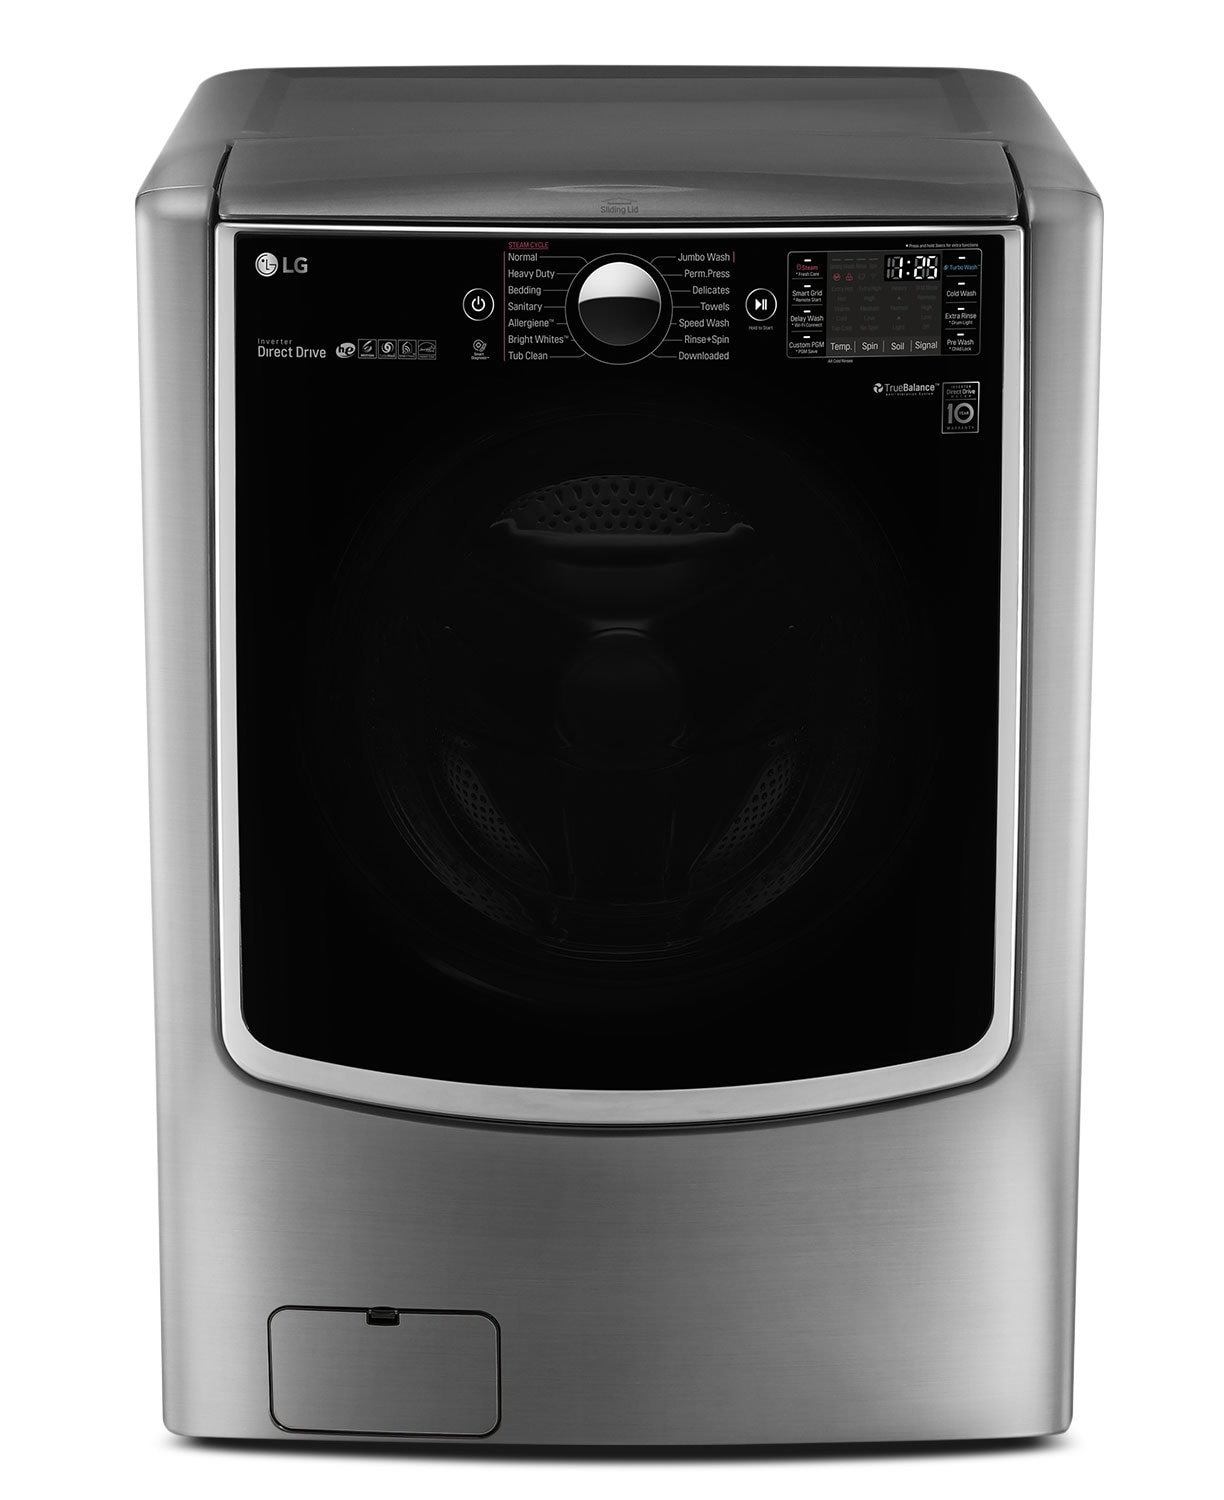 LG 6.0 Cu. Ft. High-Efficiency Front-Load Steam Washer – Graphite Steel